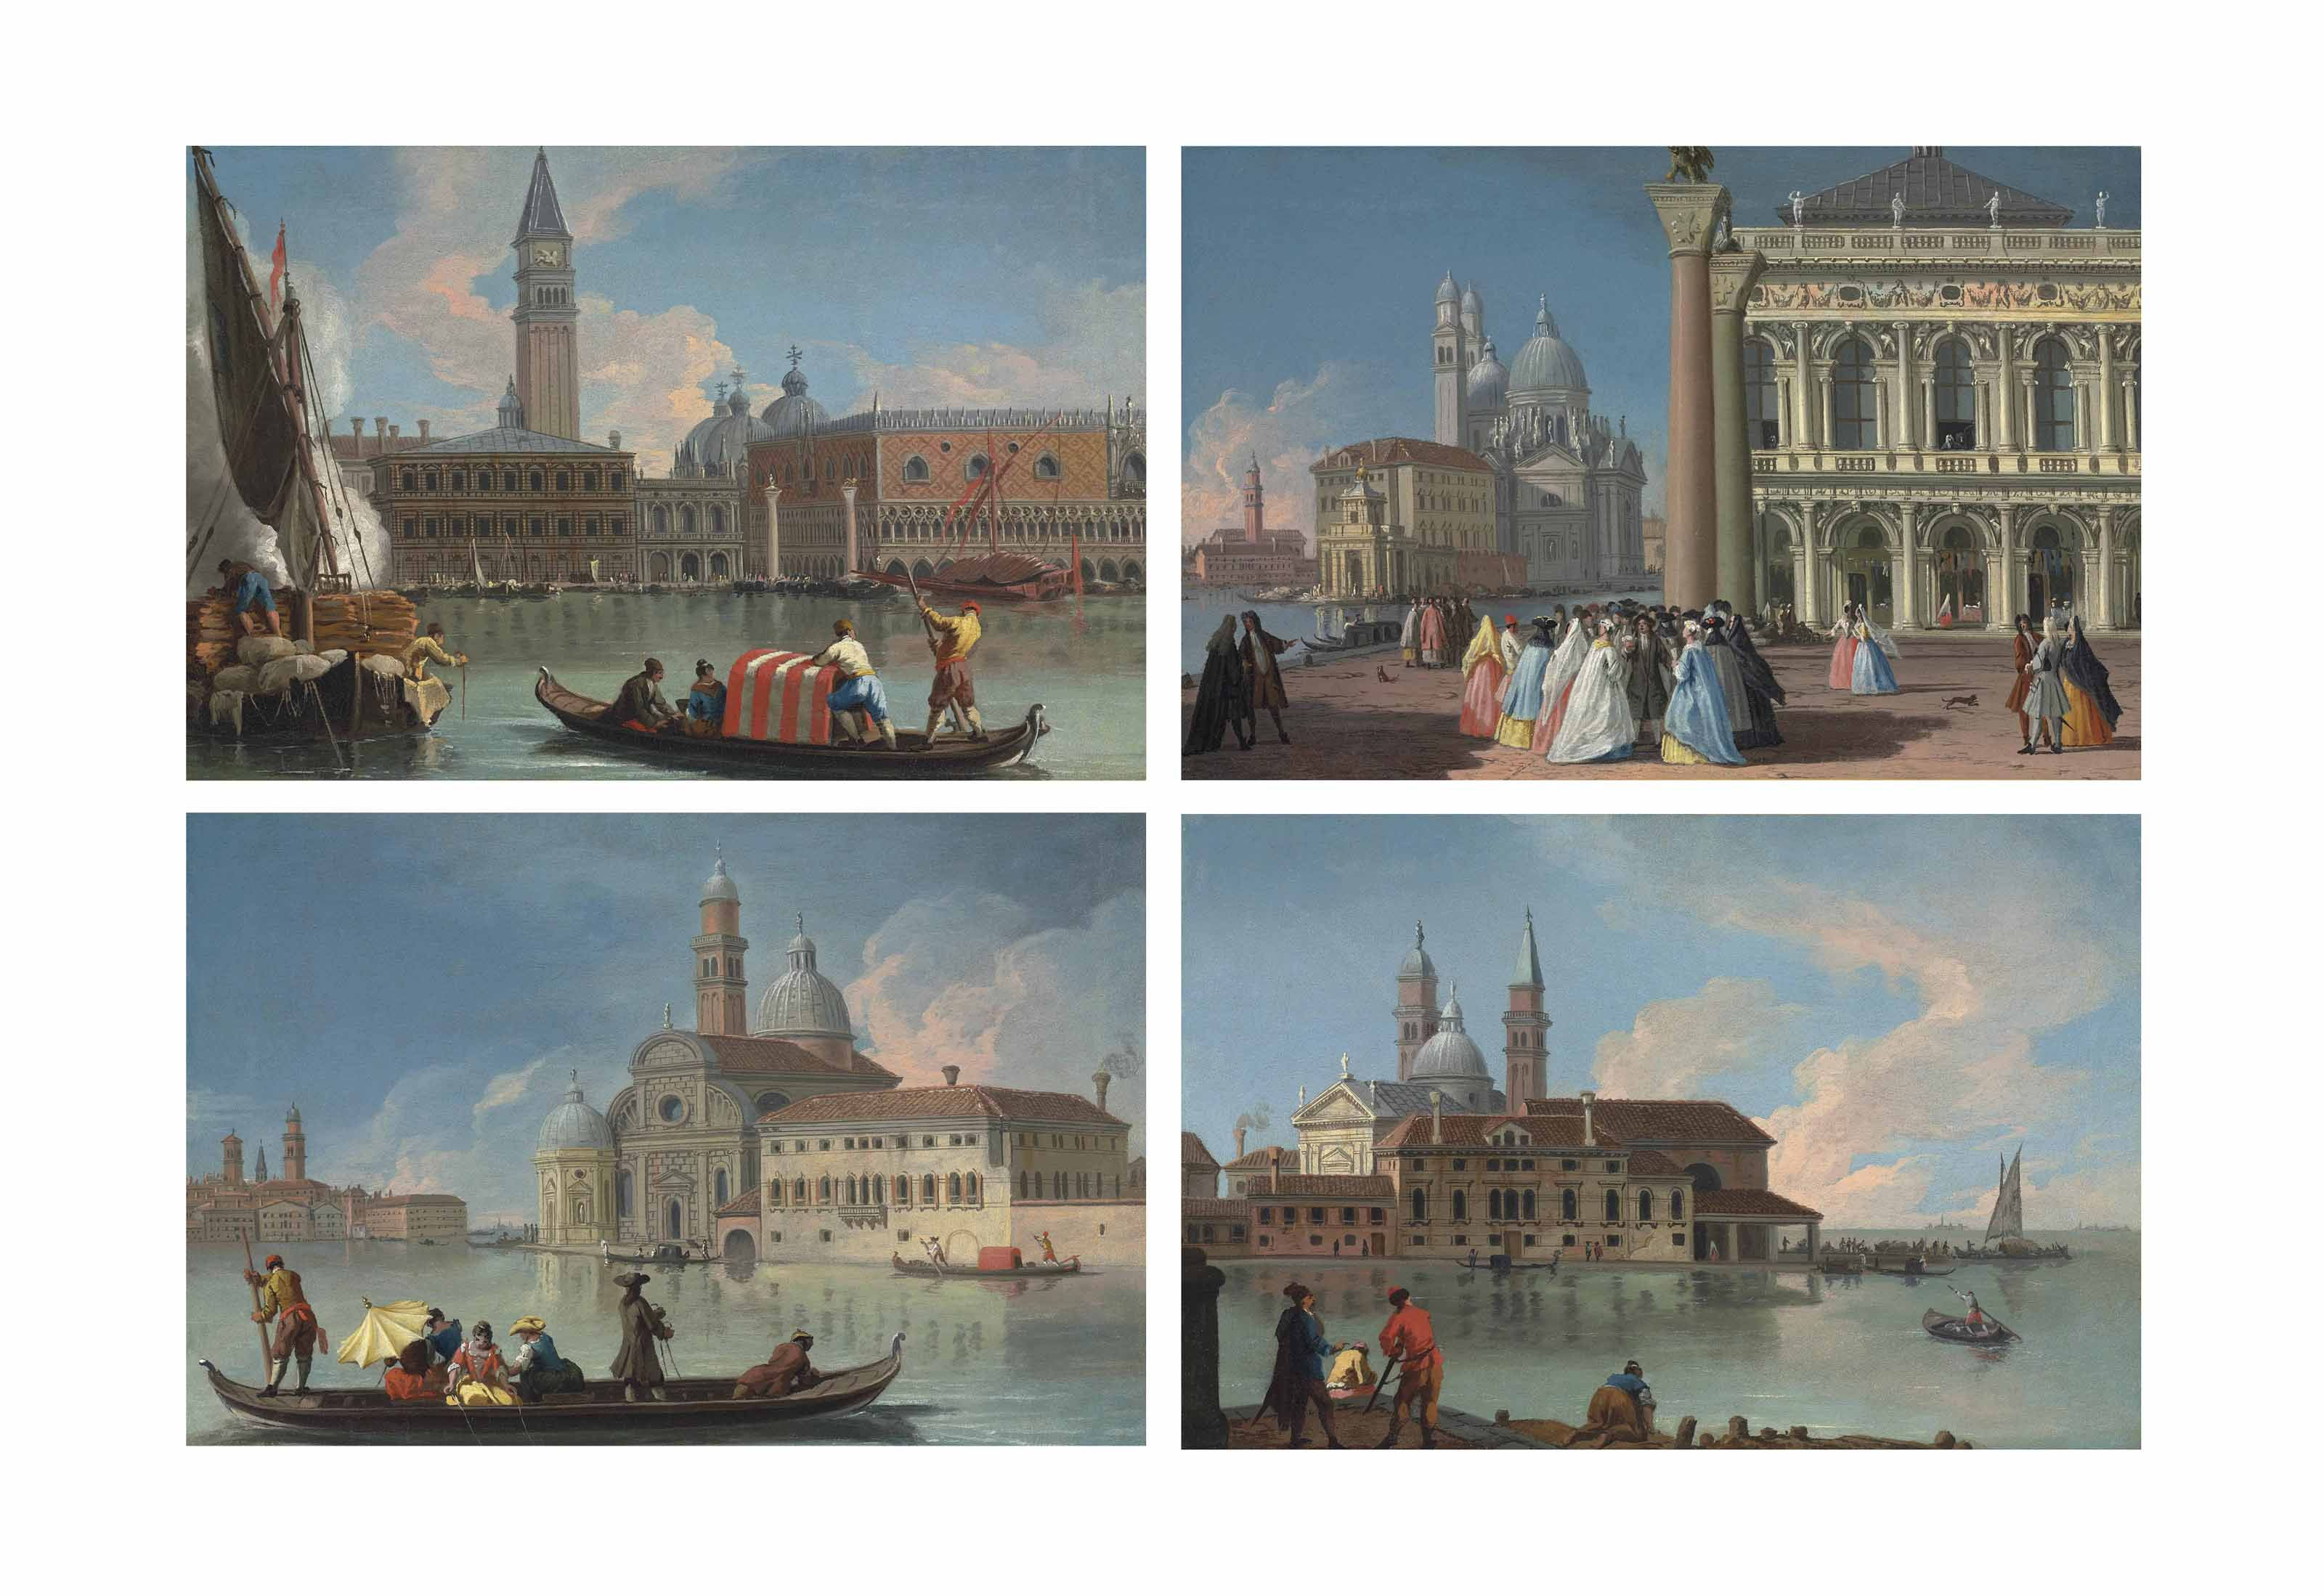 Four views of Venice: The Molo from the Bacino di San Marco, with the Zecca, Campanile and Palazzo Ducale; The Piazzetta looking towards the Libreria Sansoviniana, the Punta della Dogana and Santa Maria della Salute; The Isola di San Biagio with the Benedictine church and convent; and The Isola di San Michele with the church and monastery of San Michele in Isola